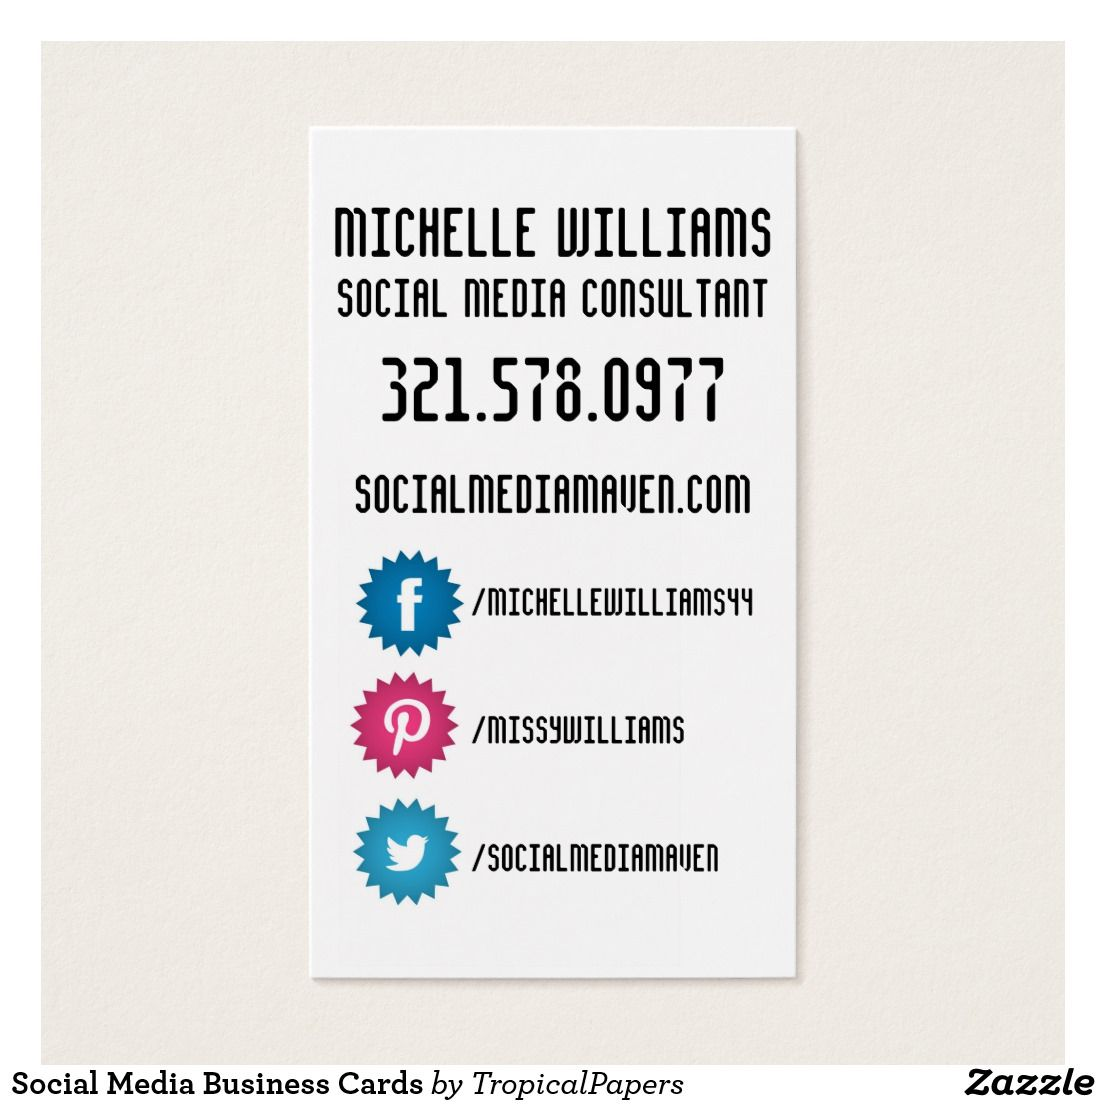 Social Media Business Cards | Business cards